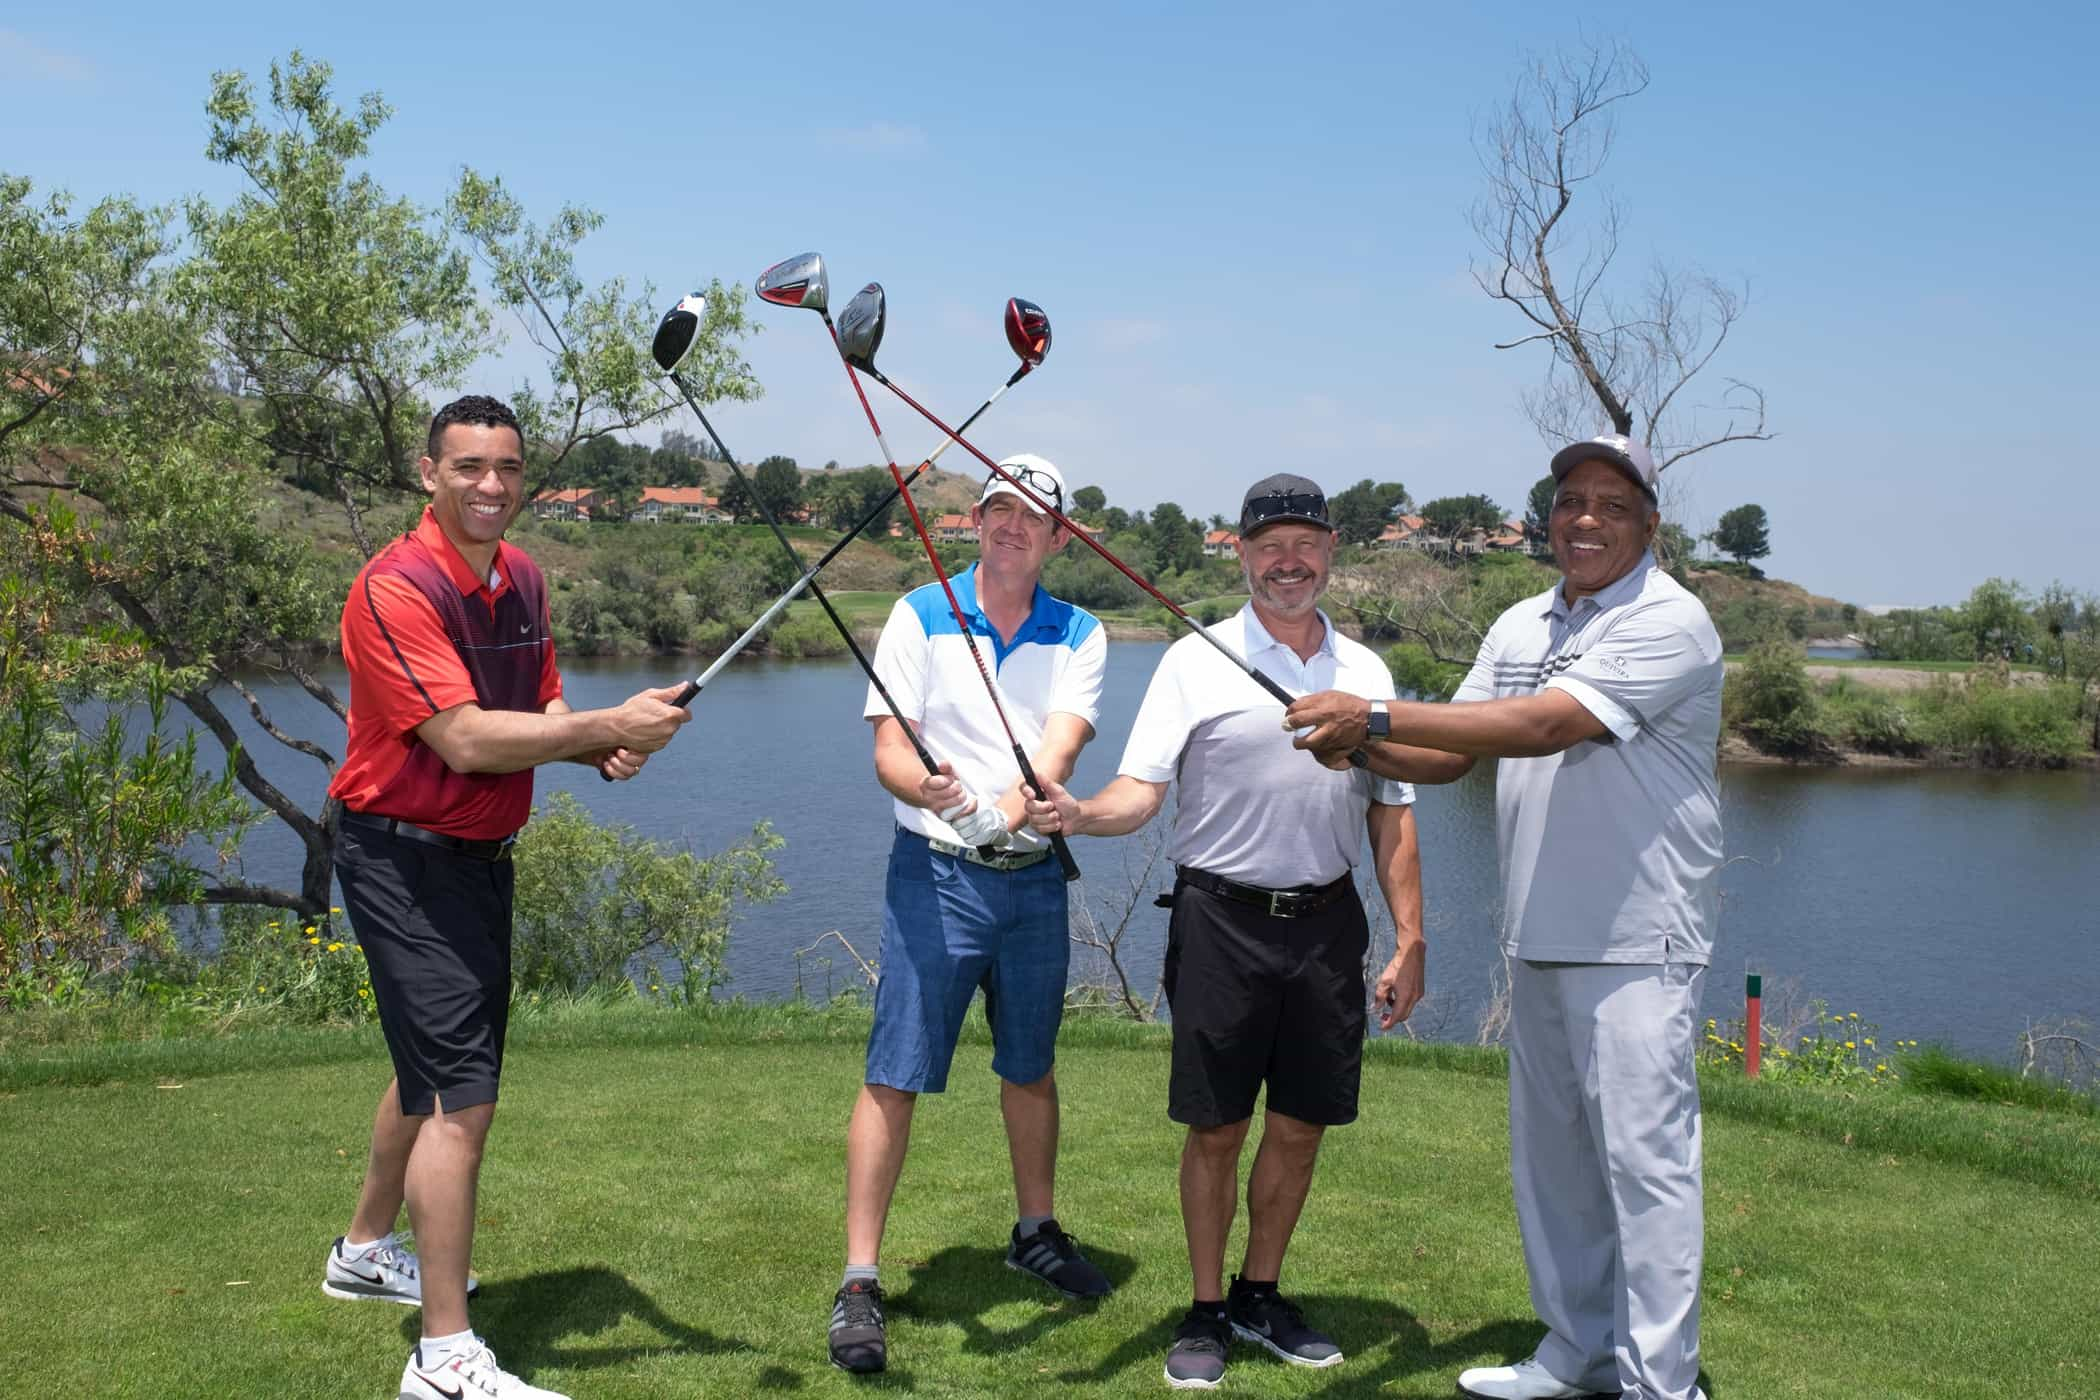 7th ANNUAL TEE IT UP FOR EDUCATION GOLF TOURNAMENT RAISES OVER $90,000